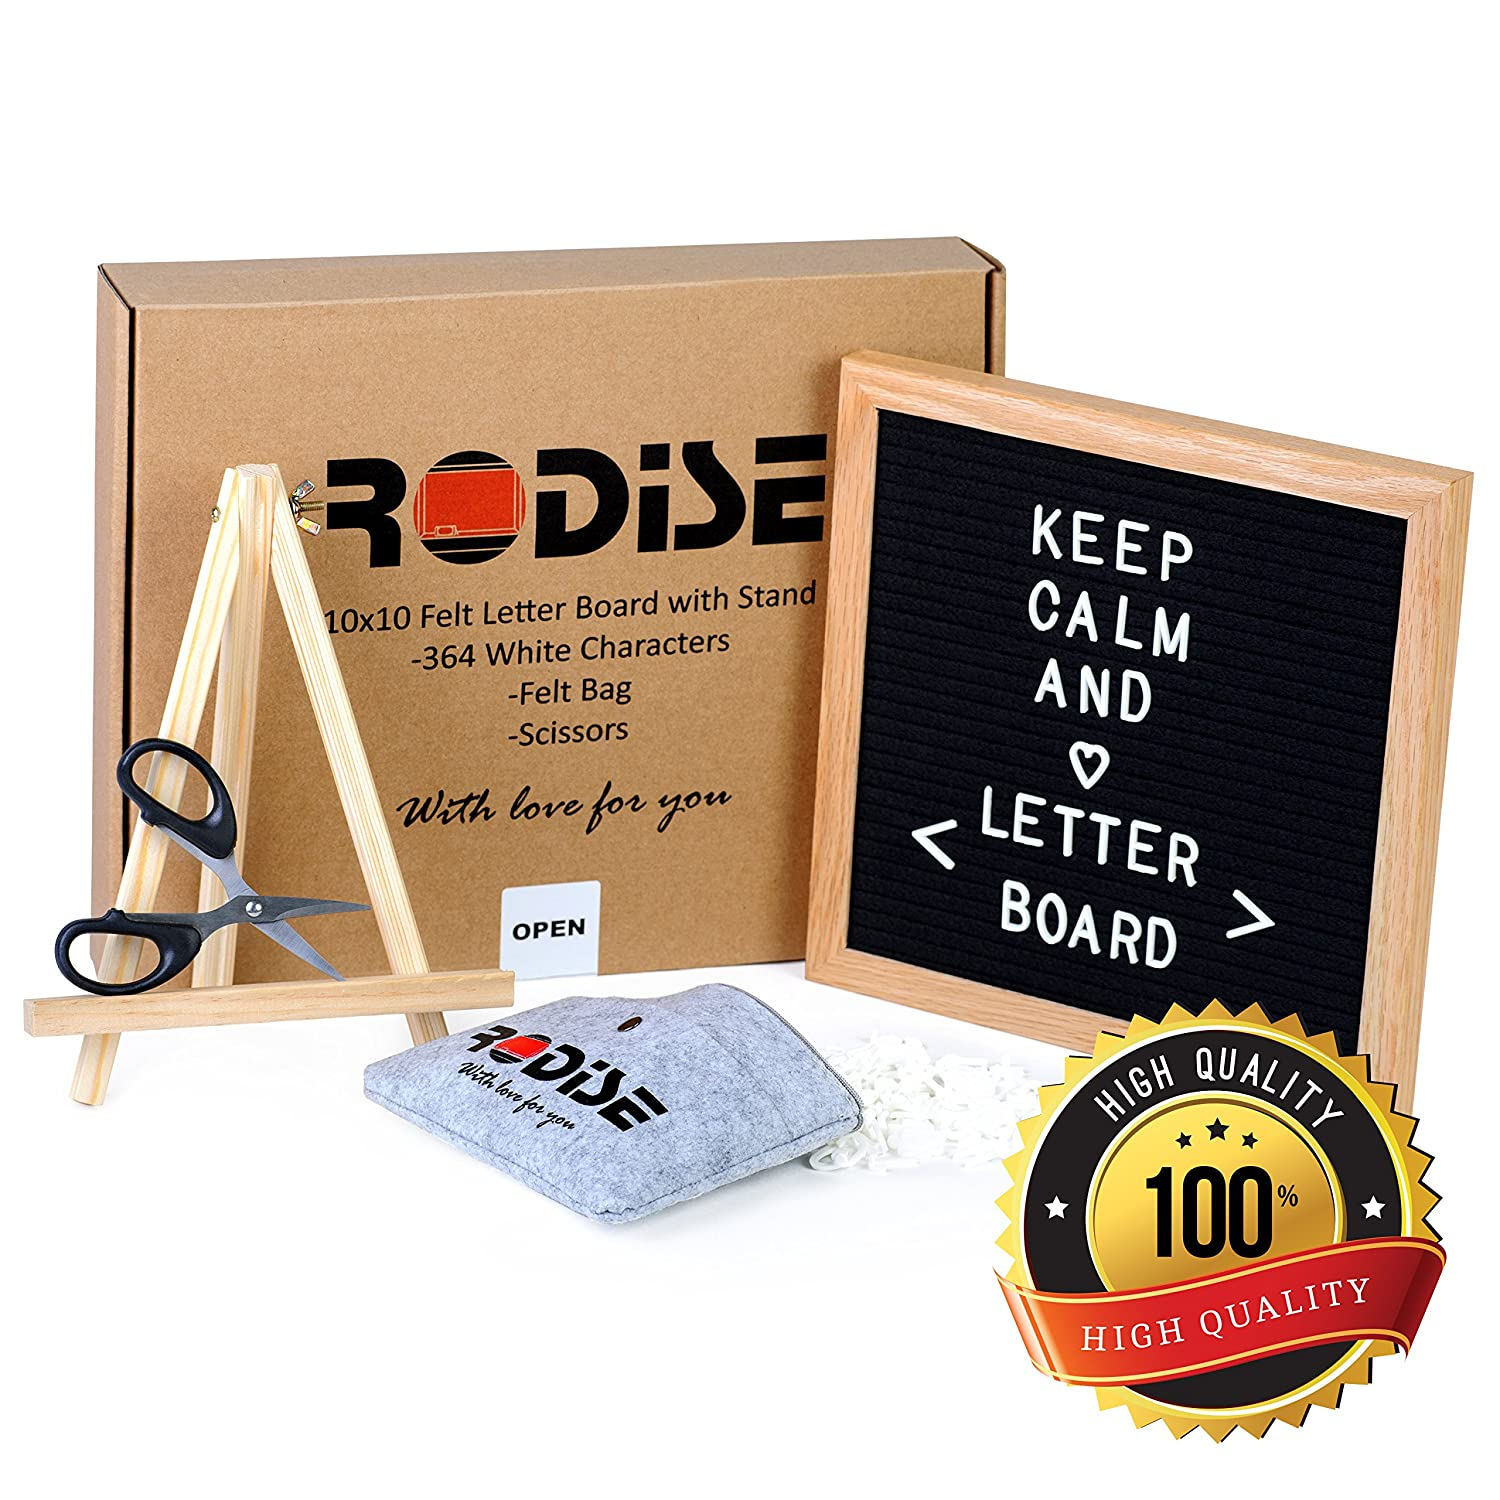 Black Felt Letter Board with Scissors-364 Letters Changeable Message Boards Oak Frame 10x10 inch Perfect Gift Emoji Sign /& Numbers Wood Stand Wall Mount Special Storage Bag